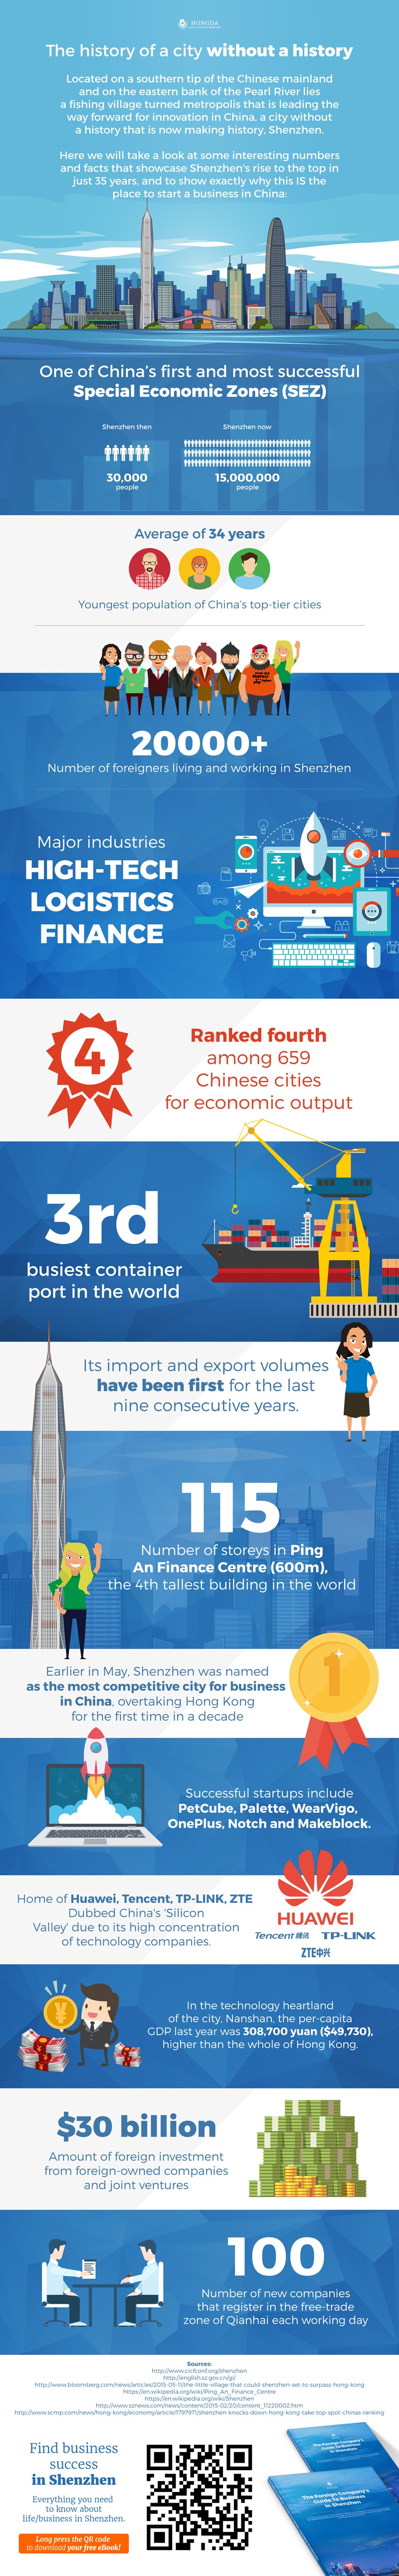 shenzhen_the_place_to_do_business_in_China_infographic.jpg